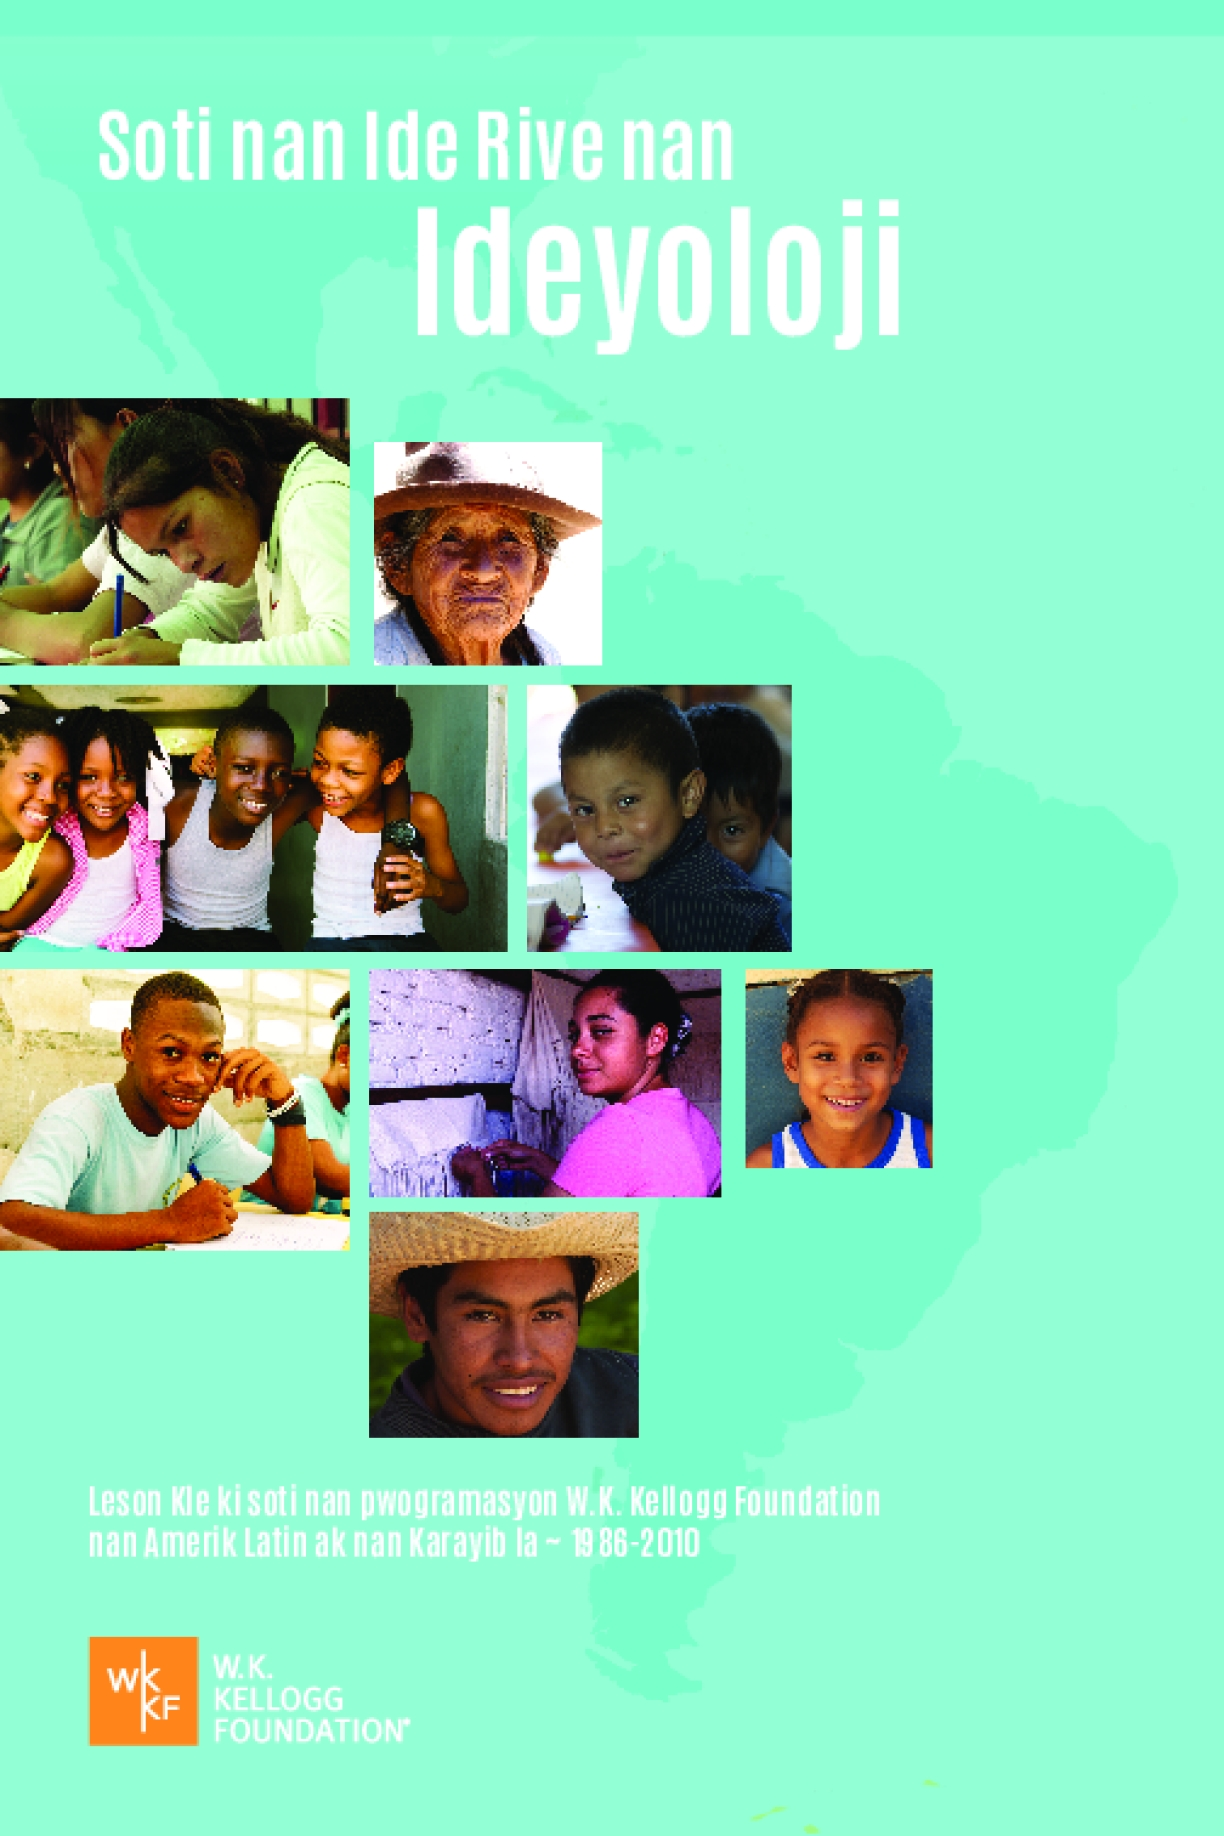 Learnings and Legacies from the Field: The W.K. Kellogg Foundation's legacy of opportunity, racial equity and civic renewal in Latin America and the Caribbean from 1986 - 2010 (Companion Summary) Haitian Creole